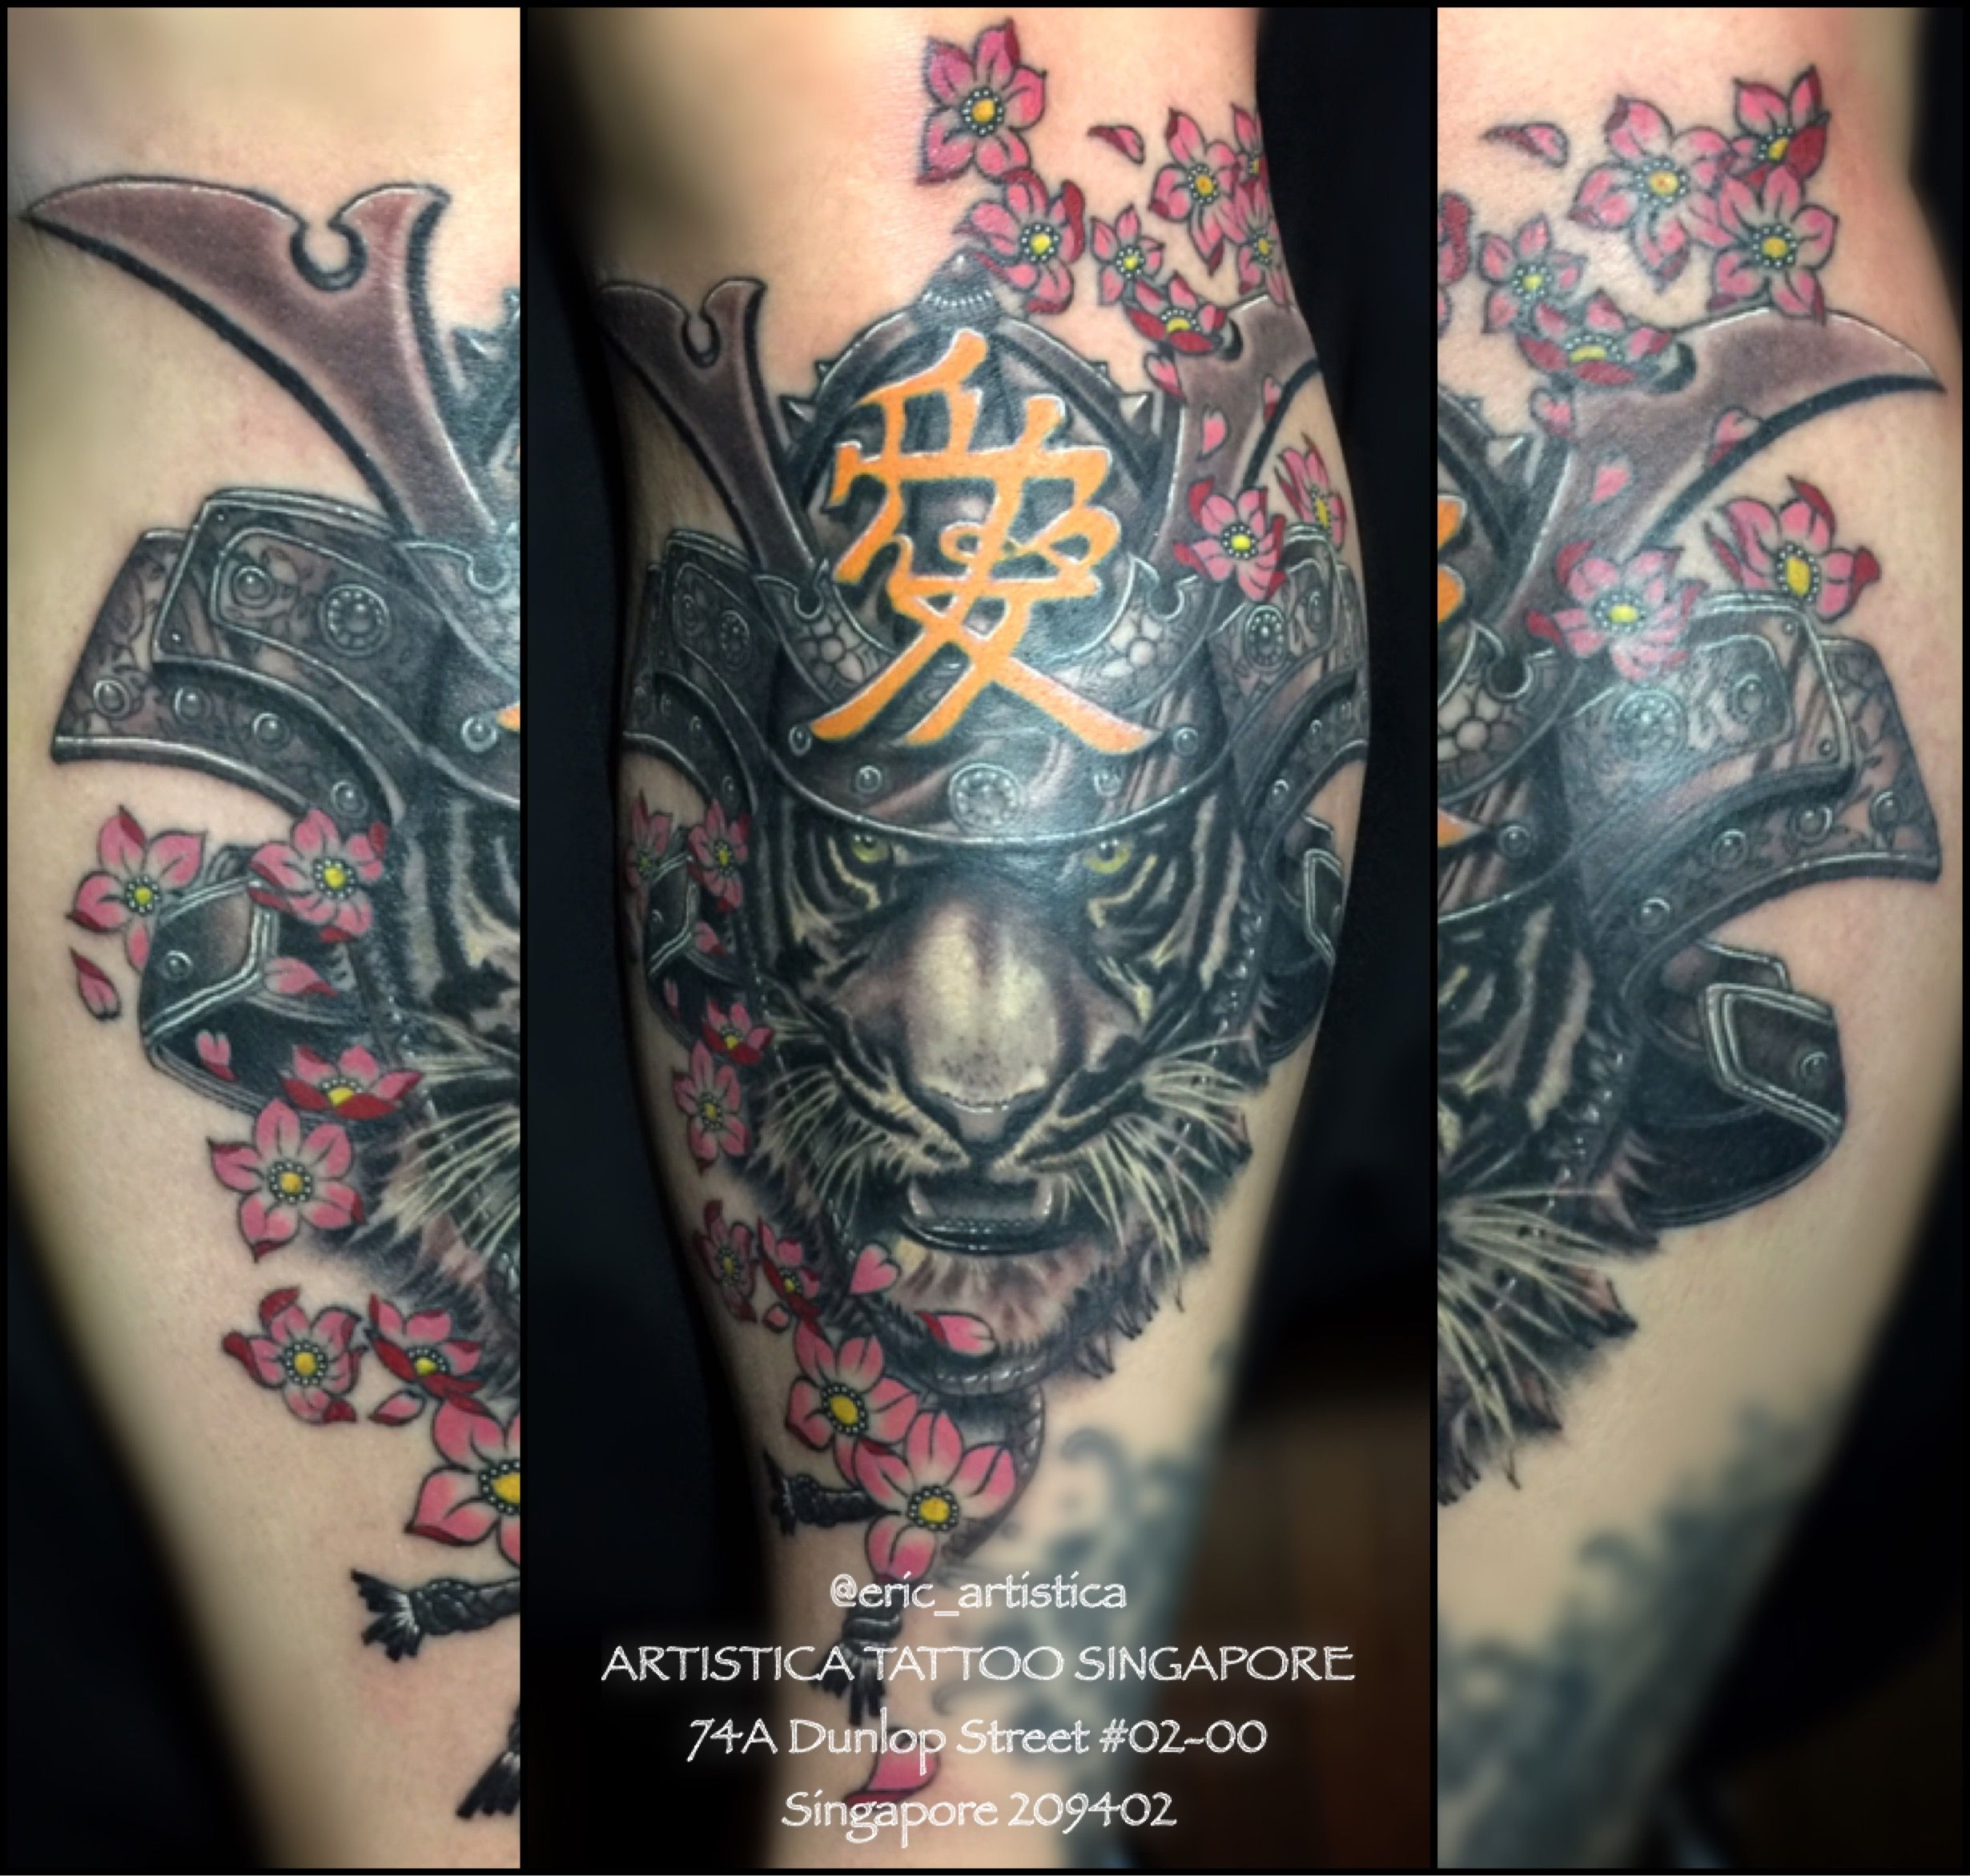 Kabuto Tiger With Cherry Blossom Front Calf Japanese Tattoo Done By Me Artistica Tattoo Singapore 74a Dunlop Street 0 Tattoos Japanese Tattoo Word Tattoos